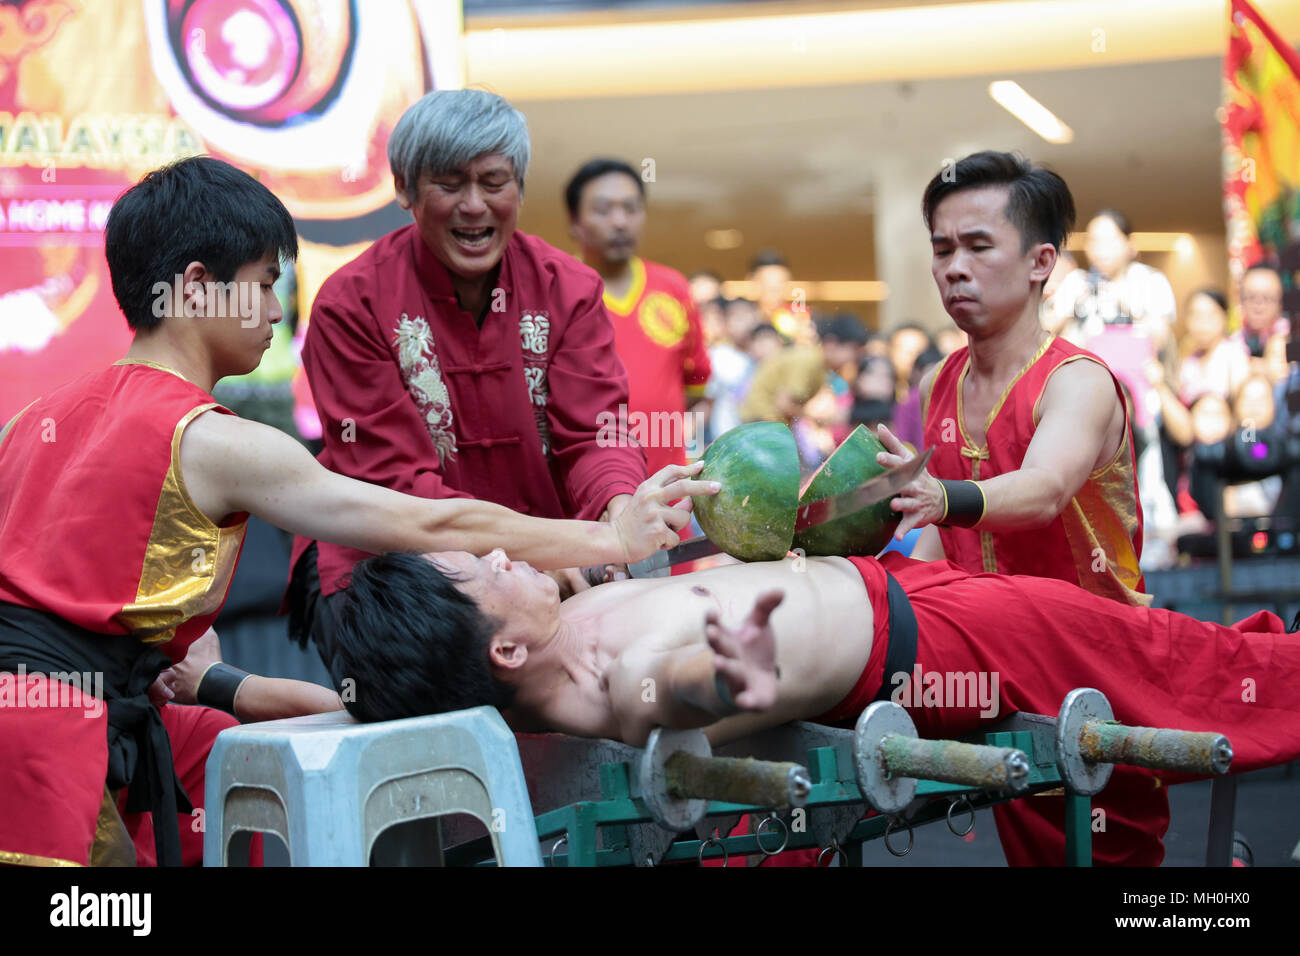 Chinese traditional stuntman master using sword to cut watermelon laying on apprentice's tomach at VIVA HOME shopping mall in Kuala Lumpur, Malaysia. - Stock Image